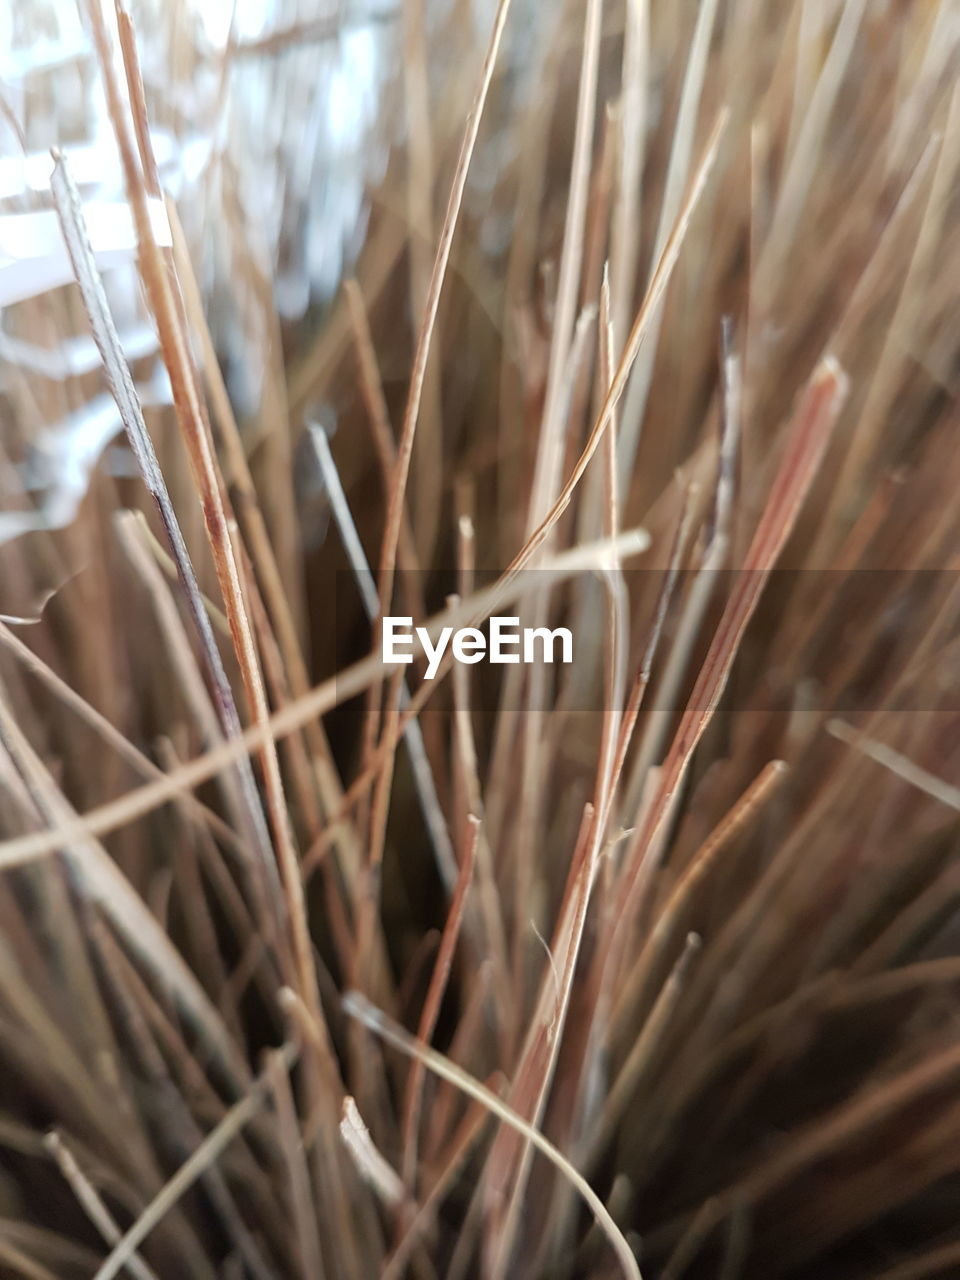 growth, nature, plant, close-up, no people, straw, day, outdoors, beauty in nature, grass